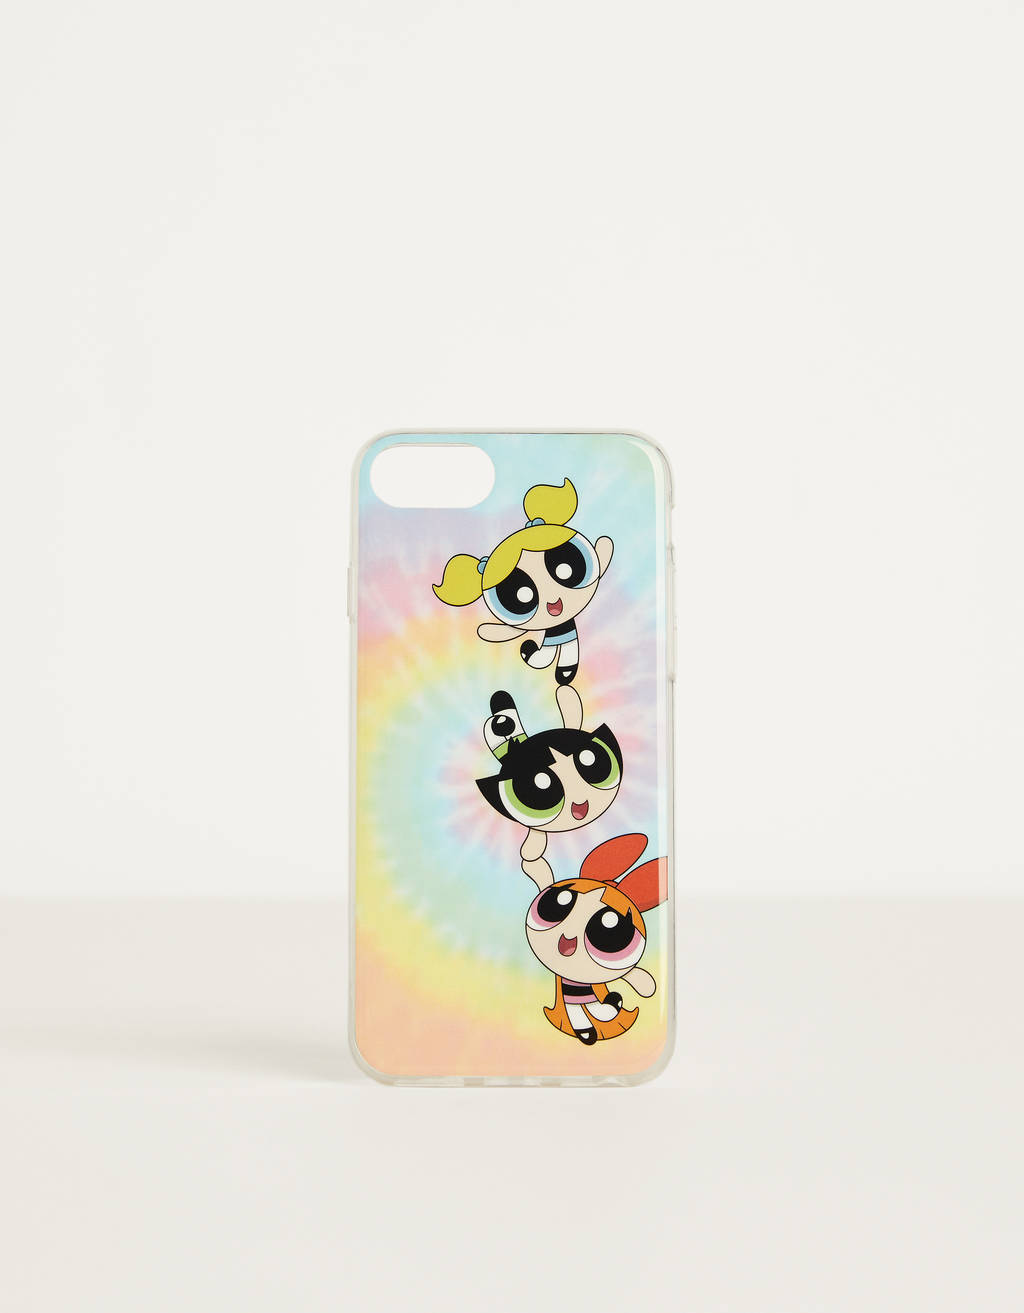 The Powerpuff Girls x Bershka iPhone 6 / 6S / 7 / 8 case